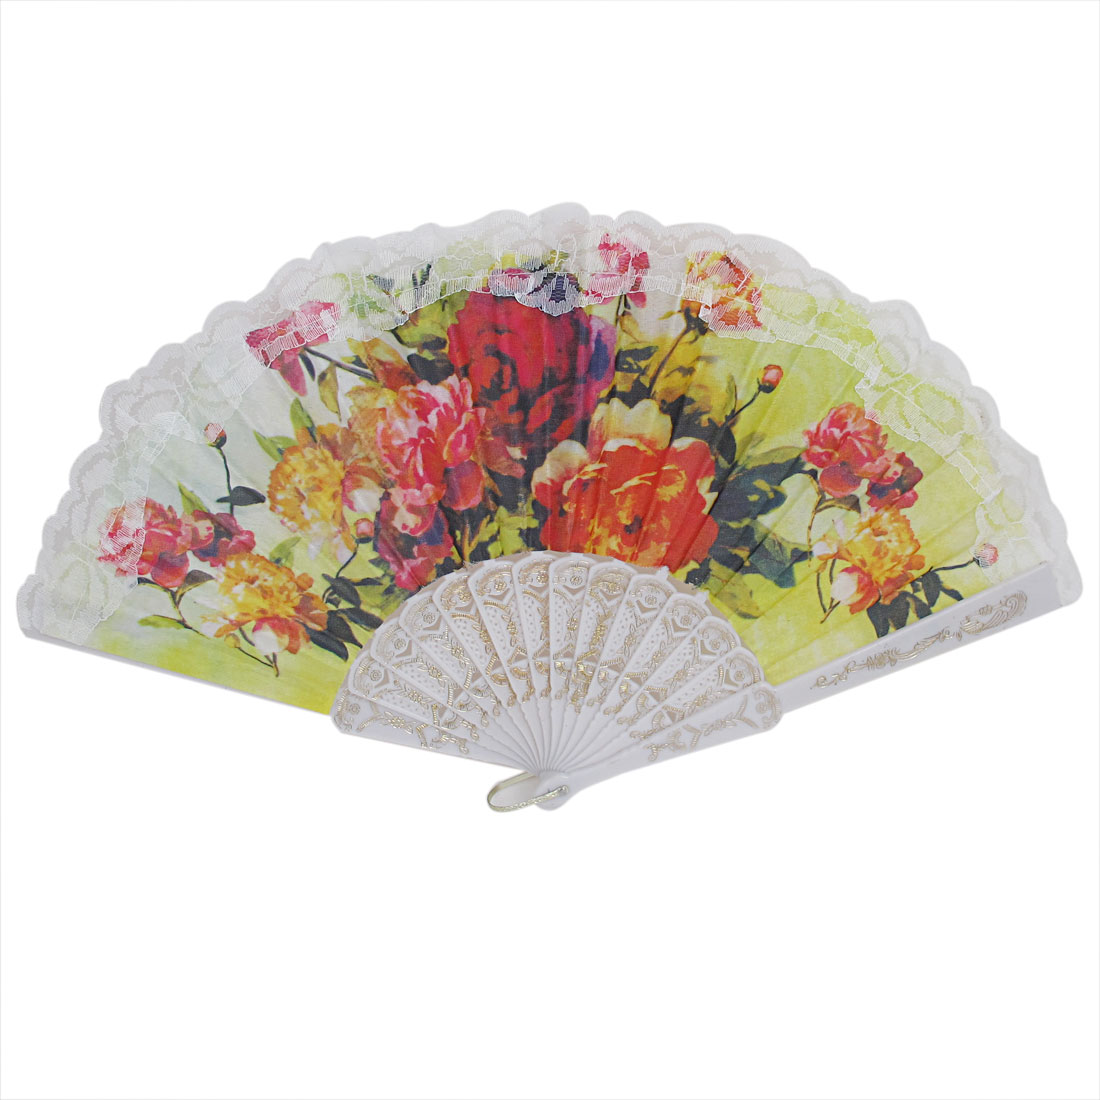 Wedding Party Gift White Plastic Frame Lace Detailing D Ring Decor Folding Hand Fan